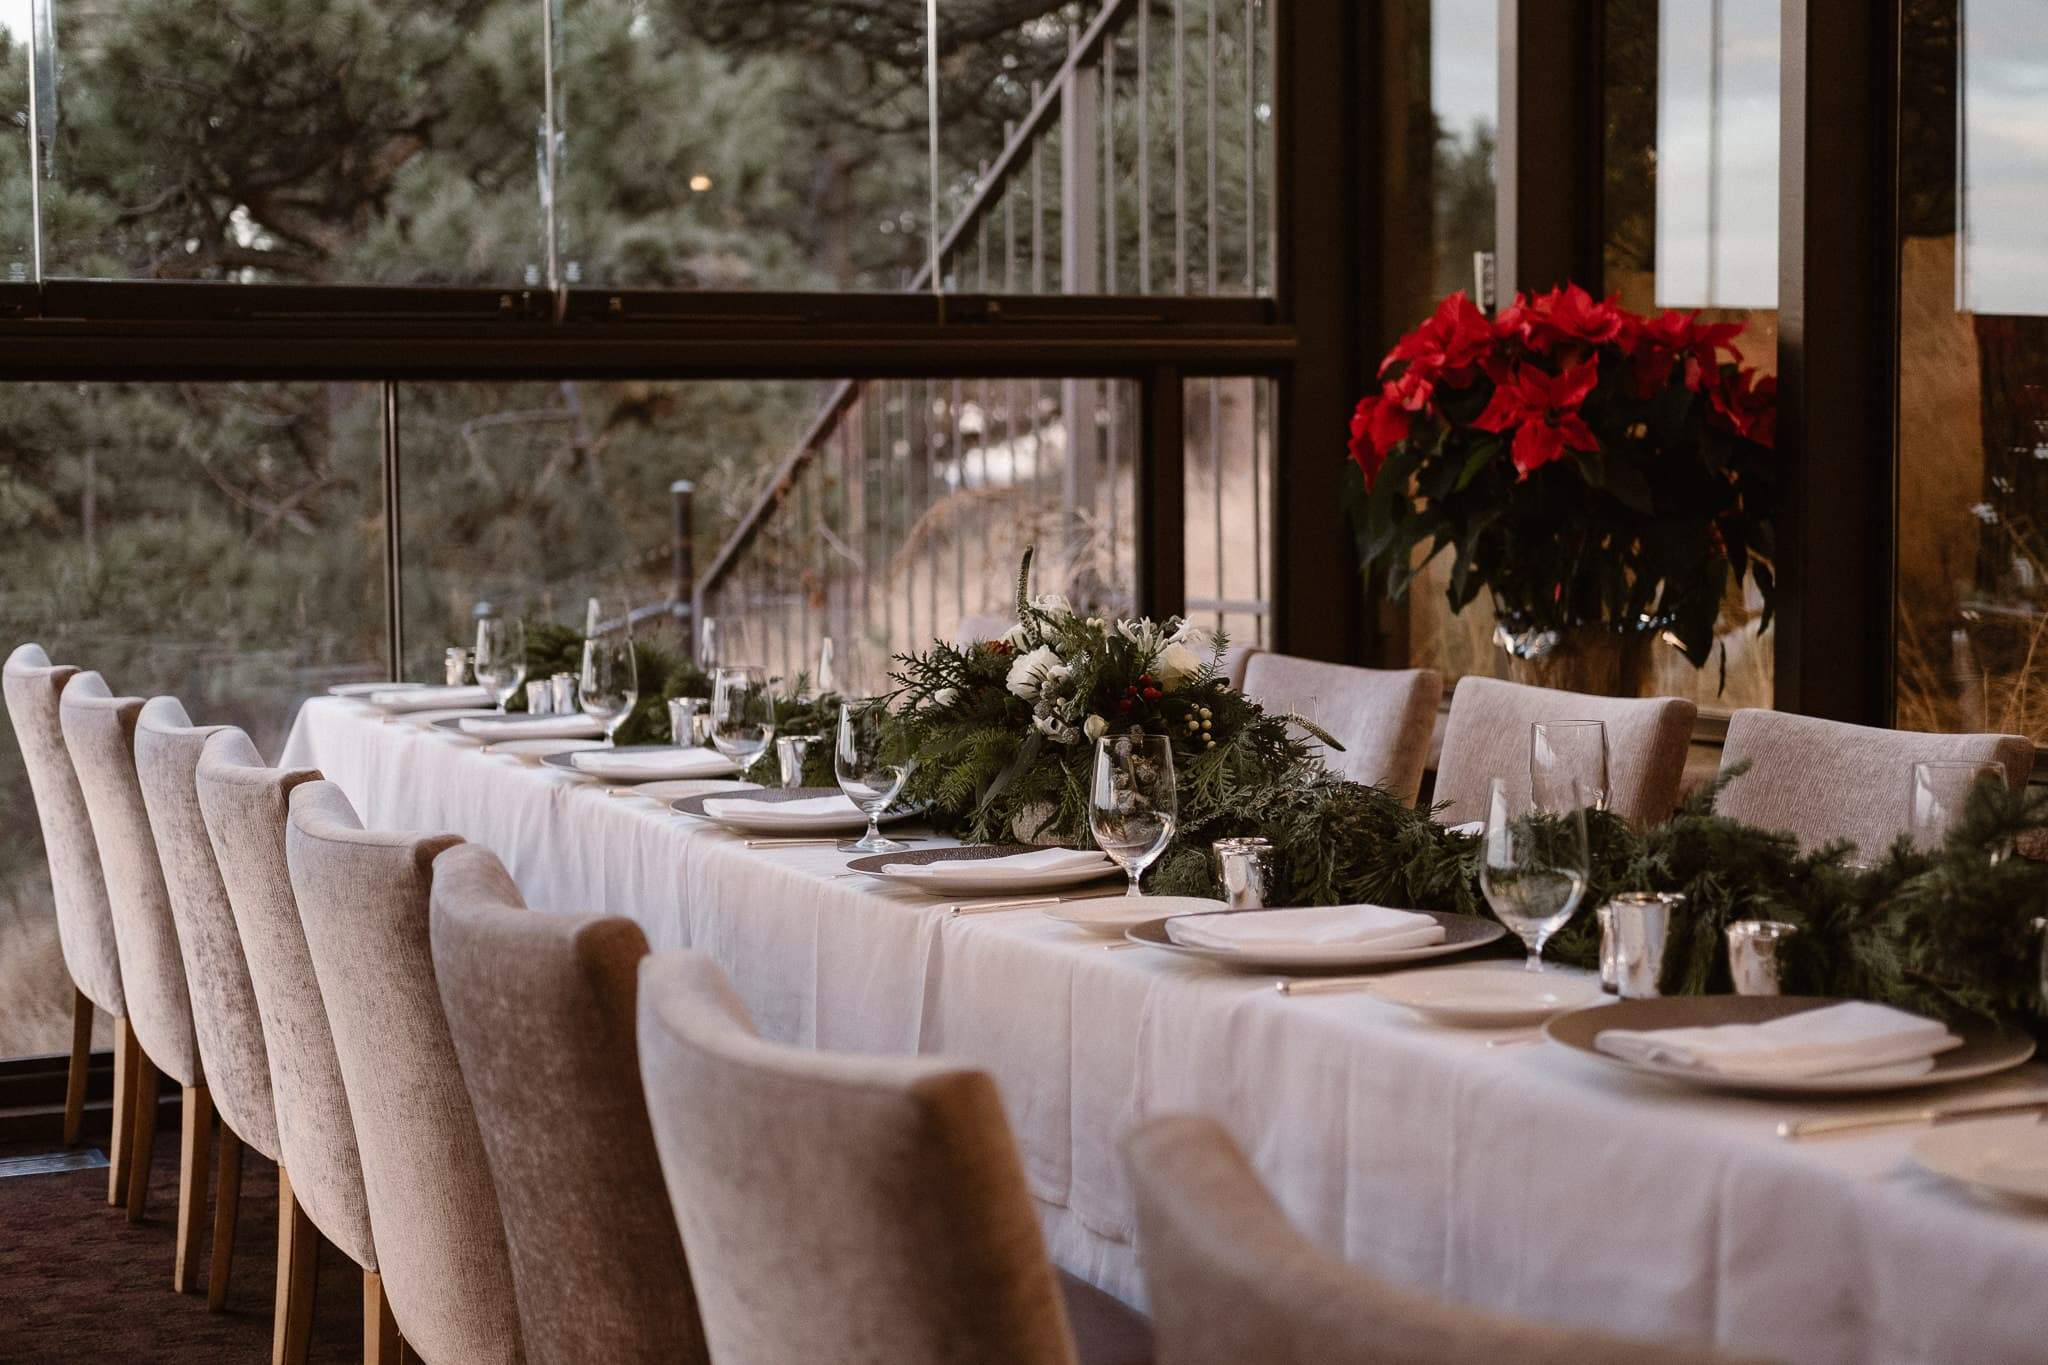 Flagstaff House wedding reception, Boulder intimate wedding, Christmas themed wedding reception decor